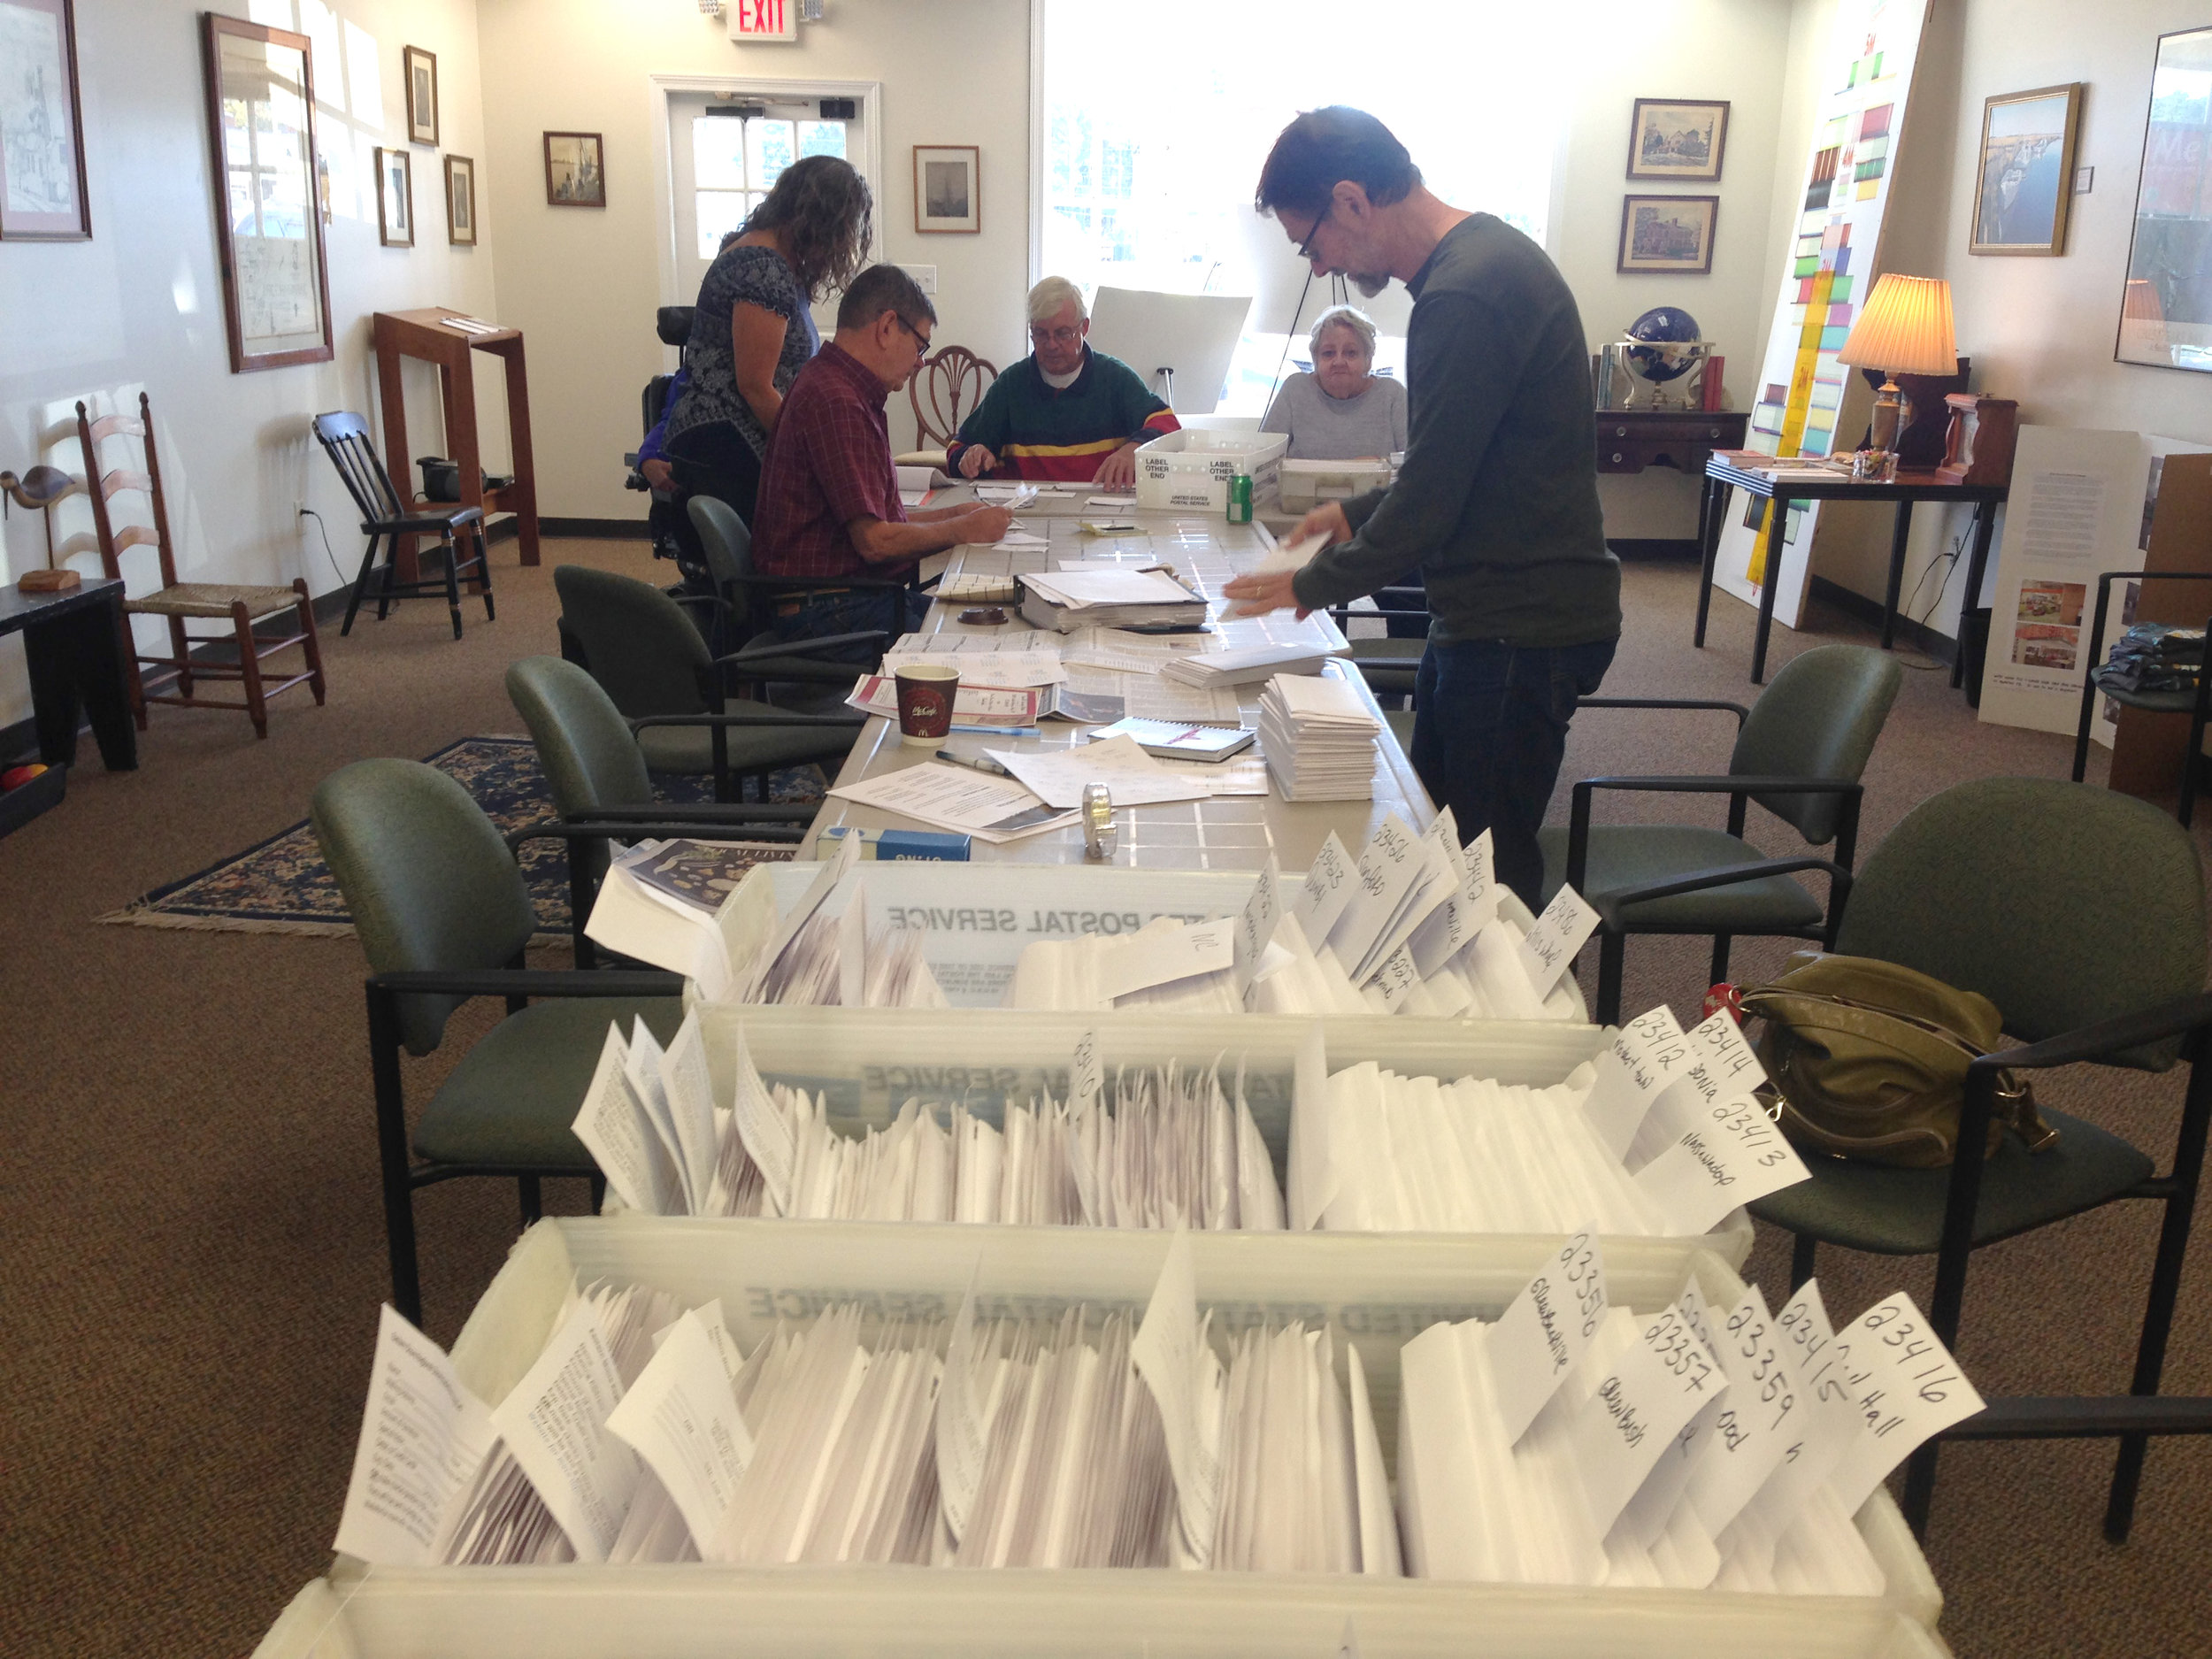 ESPL Foundation volunteers stuff envelopes for a capital campaign mailing.